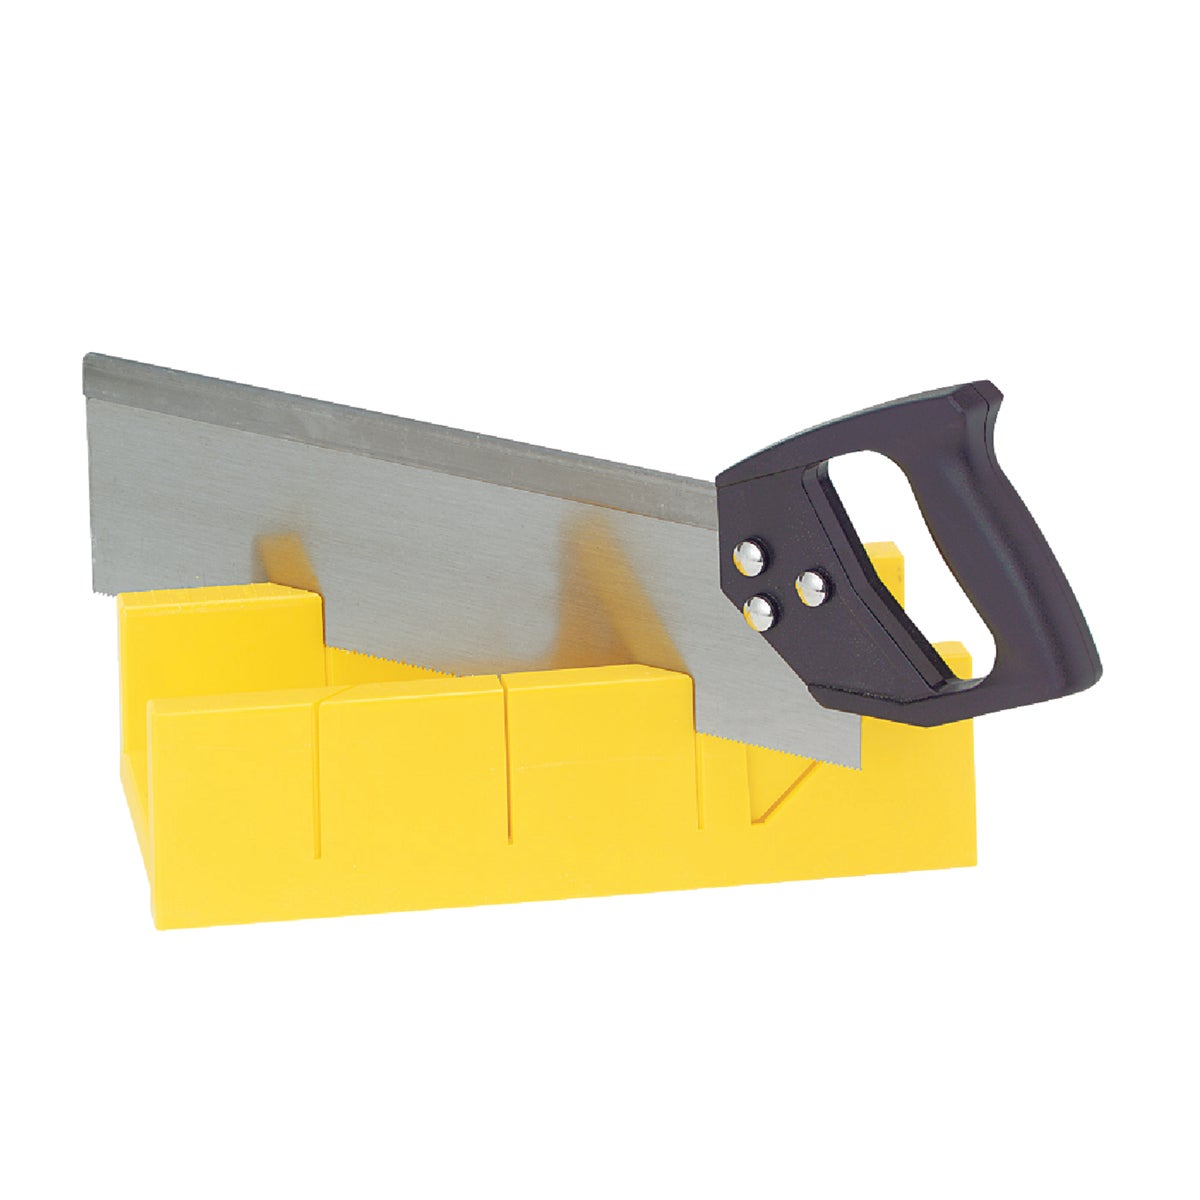 "12"" PLASIC MITER BOX - 340588 by Great Neck Saw Inc"